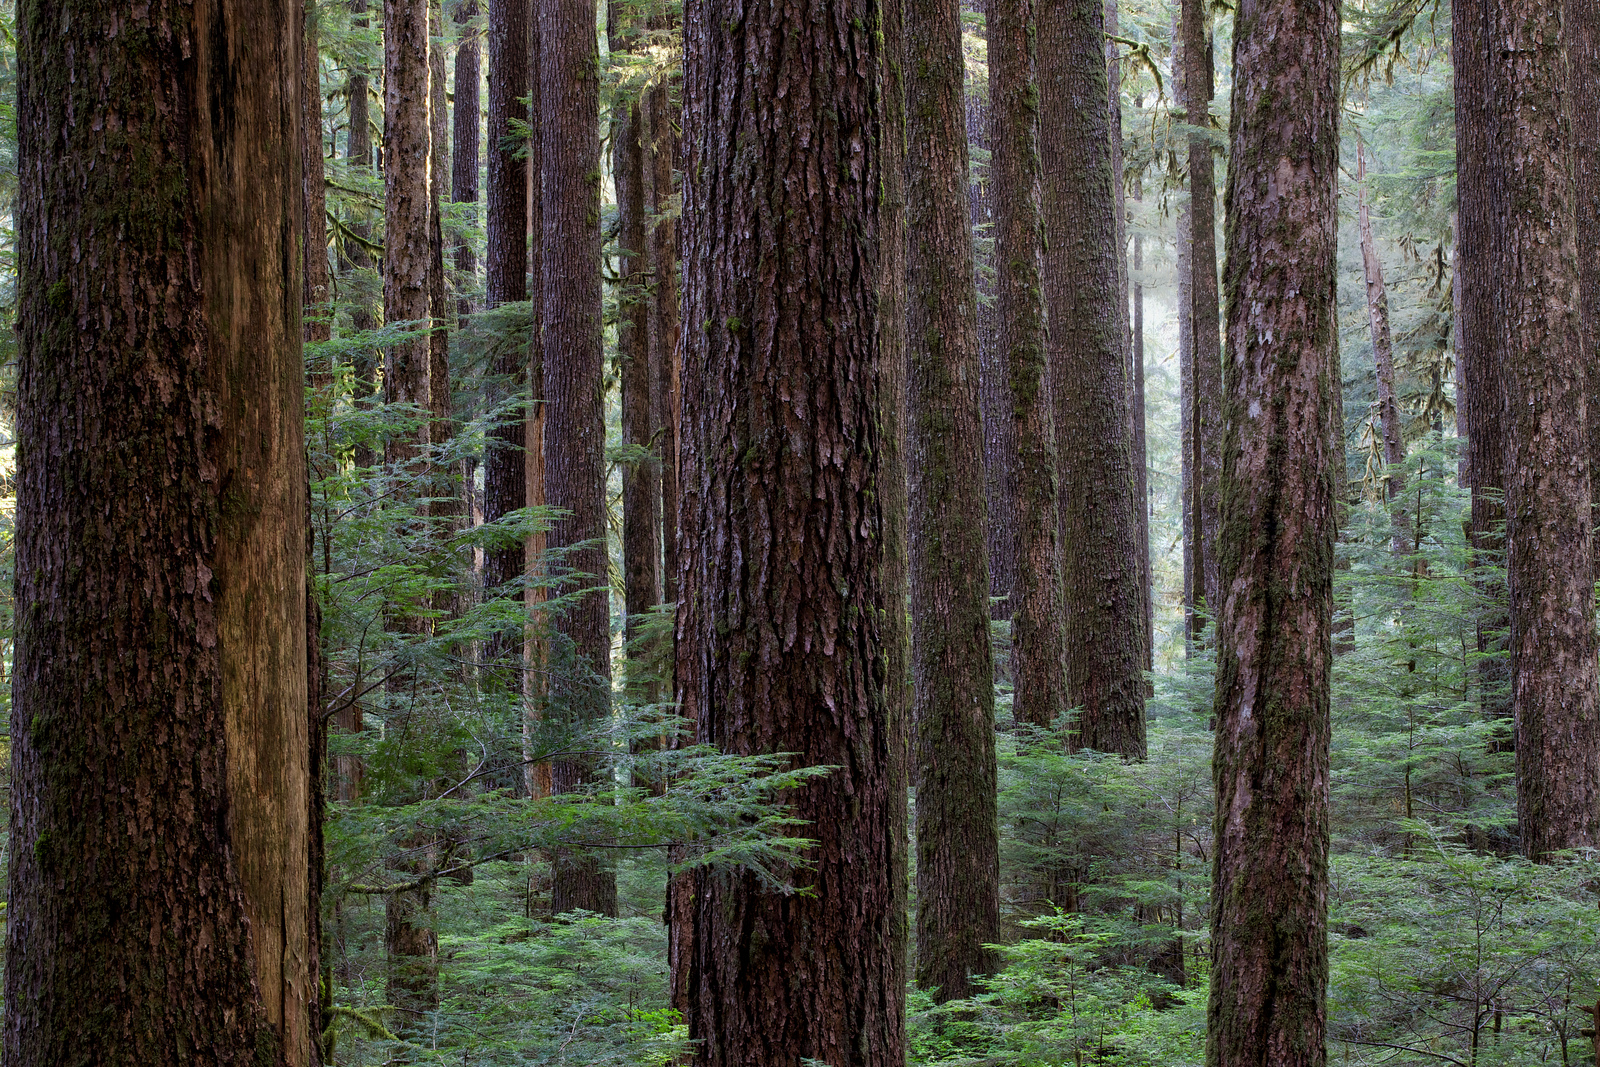 Forrest Olympic National Park